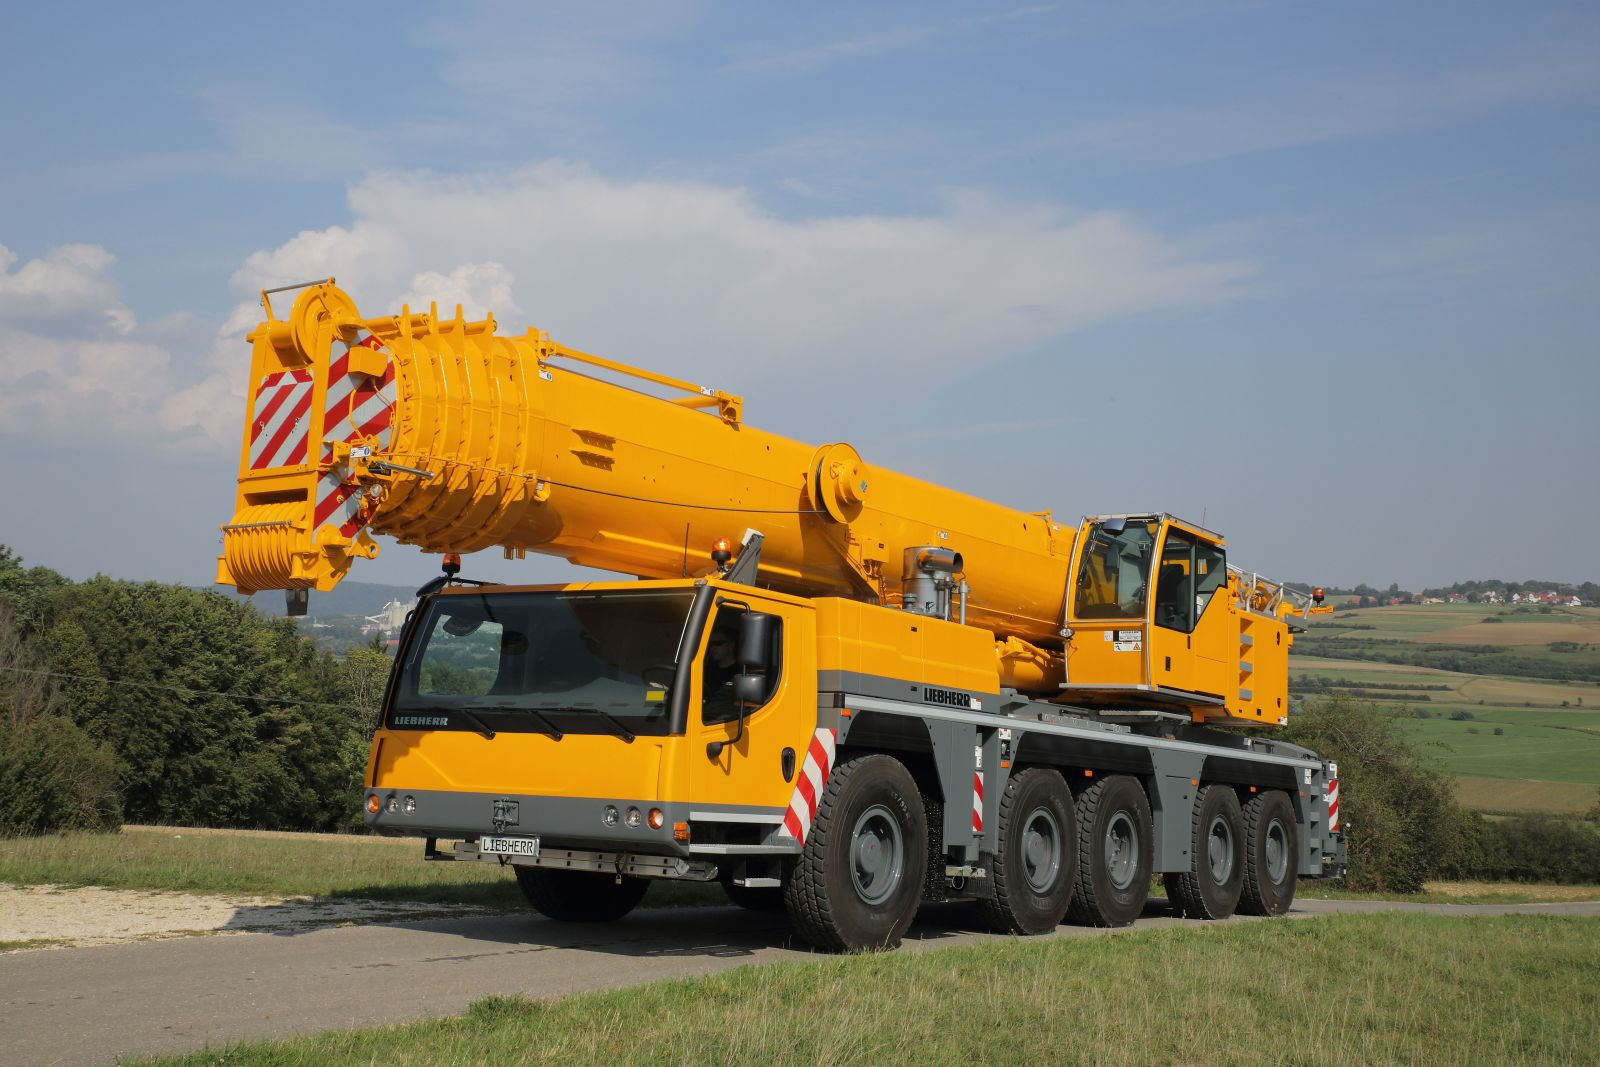 A crane similar to this one was involved in the incident